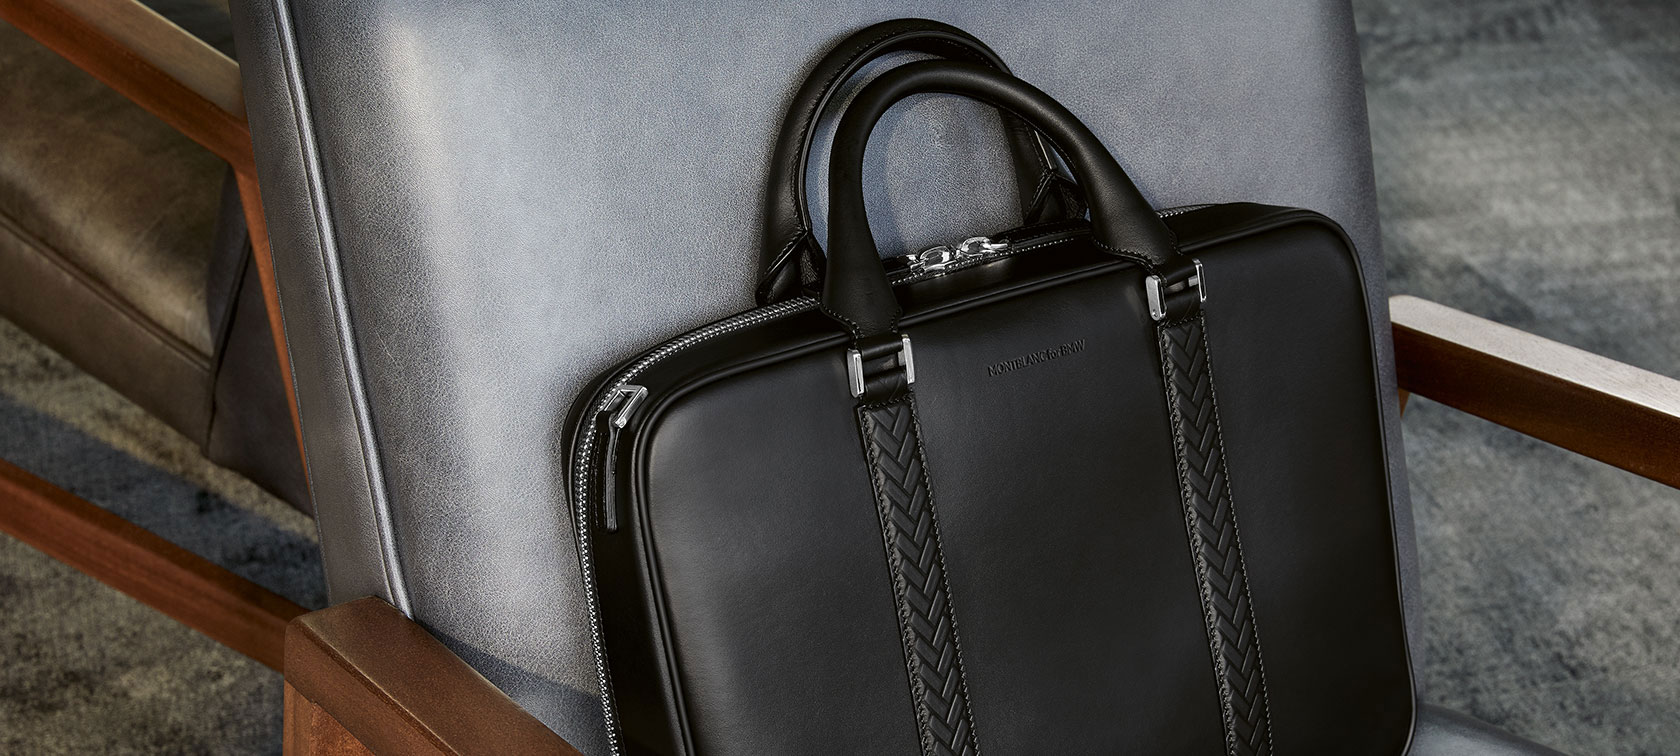 The picture shows the Montblanc for BMW Document Bag lying on a chair.